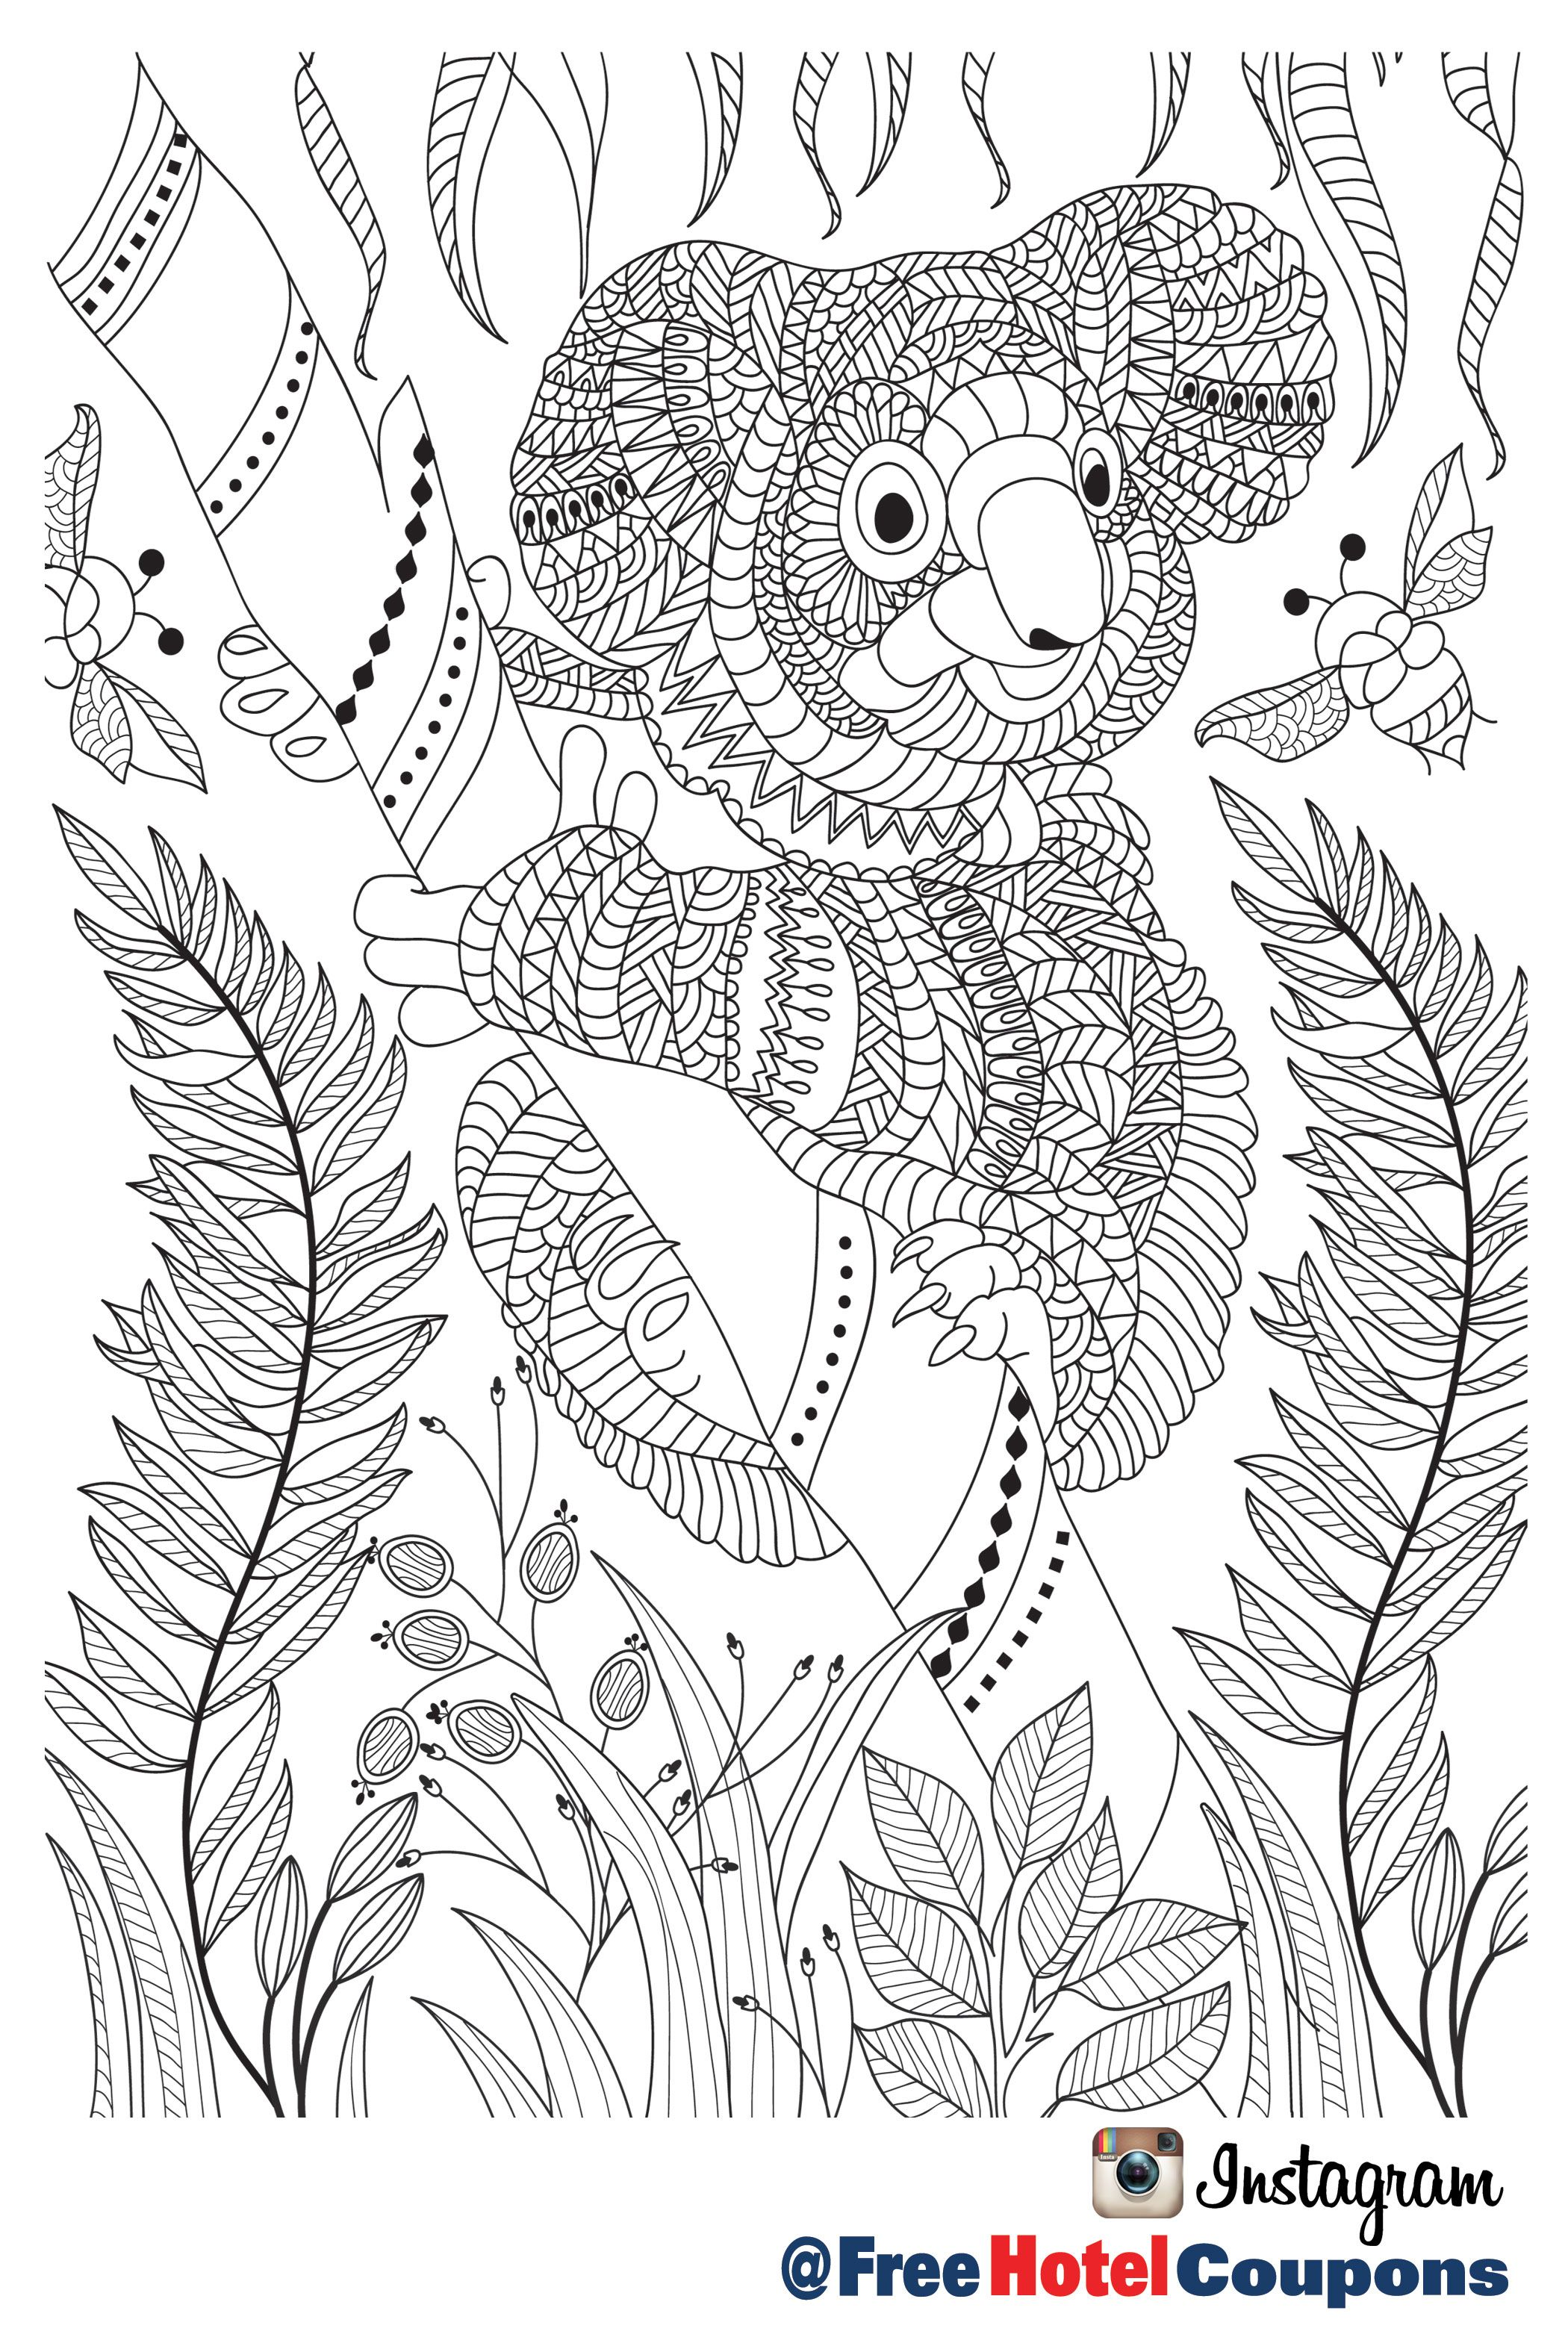 Pin von Free Hotel Coupons auf Coloring Pages | Pinterest ...